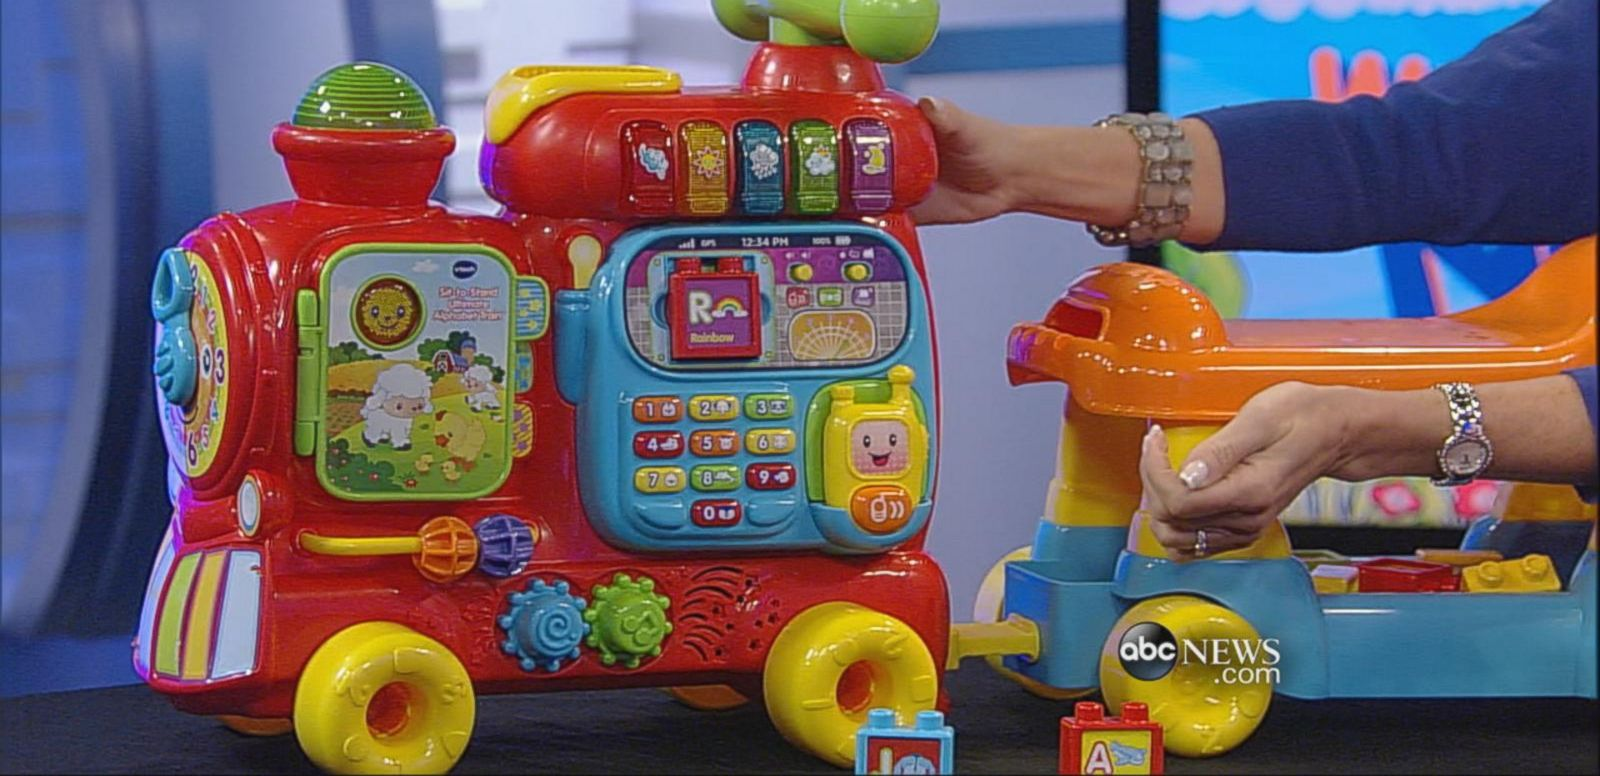 VIDEO: Toy insider Lauri Schacht shares the best new toys to engages young children.